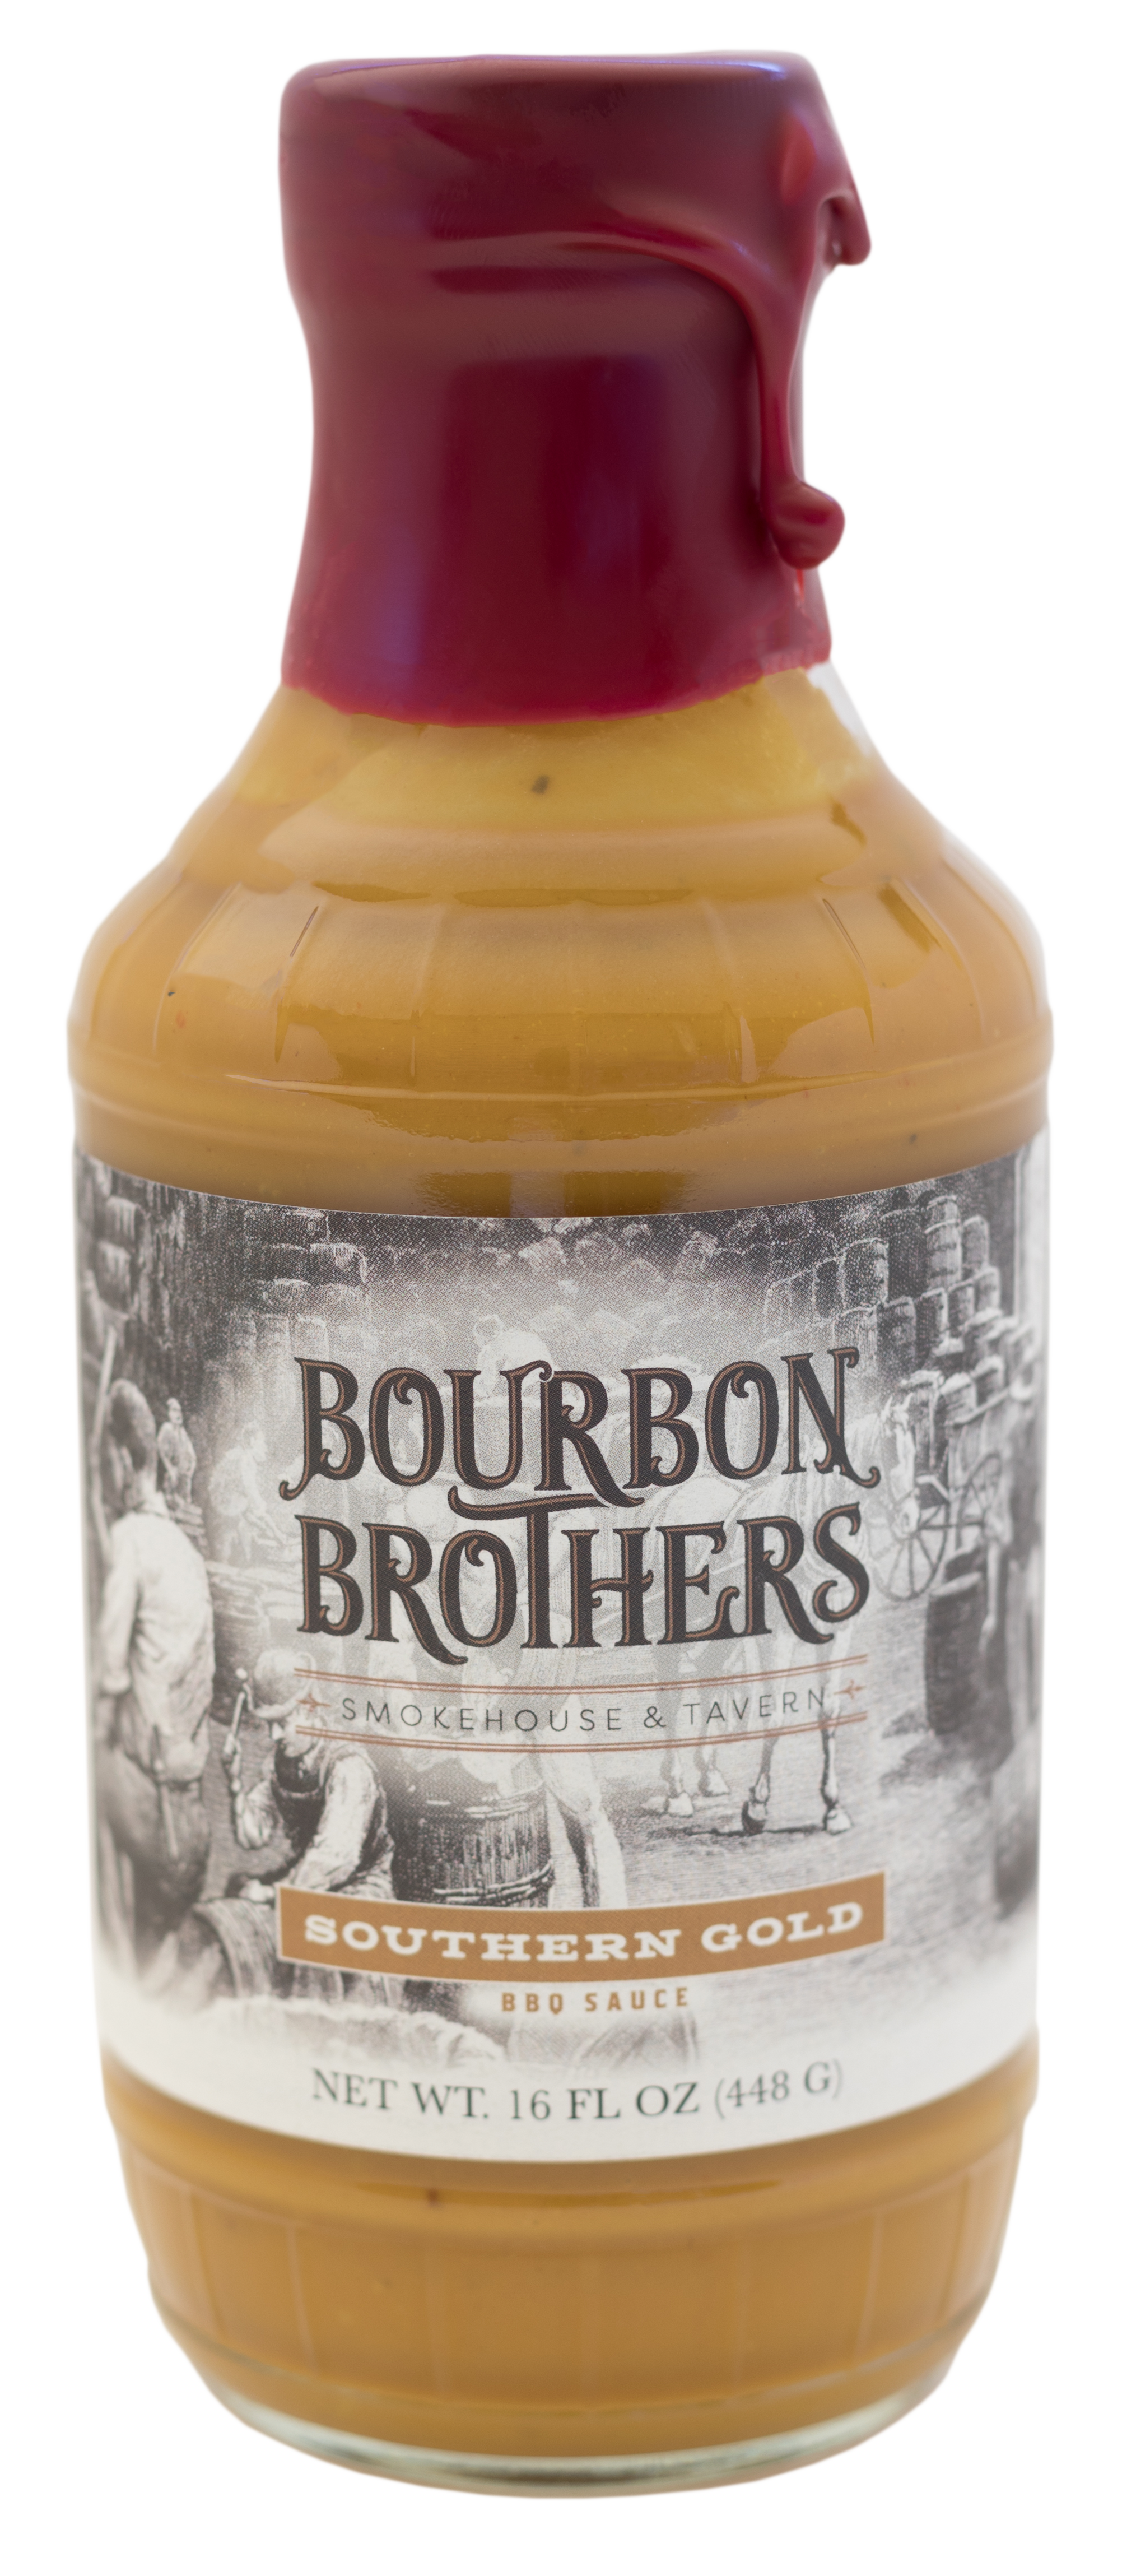 060518_BourbonBrothers_SouthernGold_CutOut.png